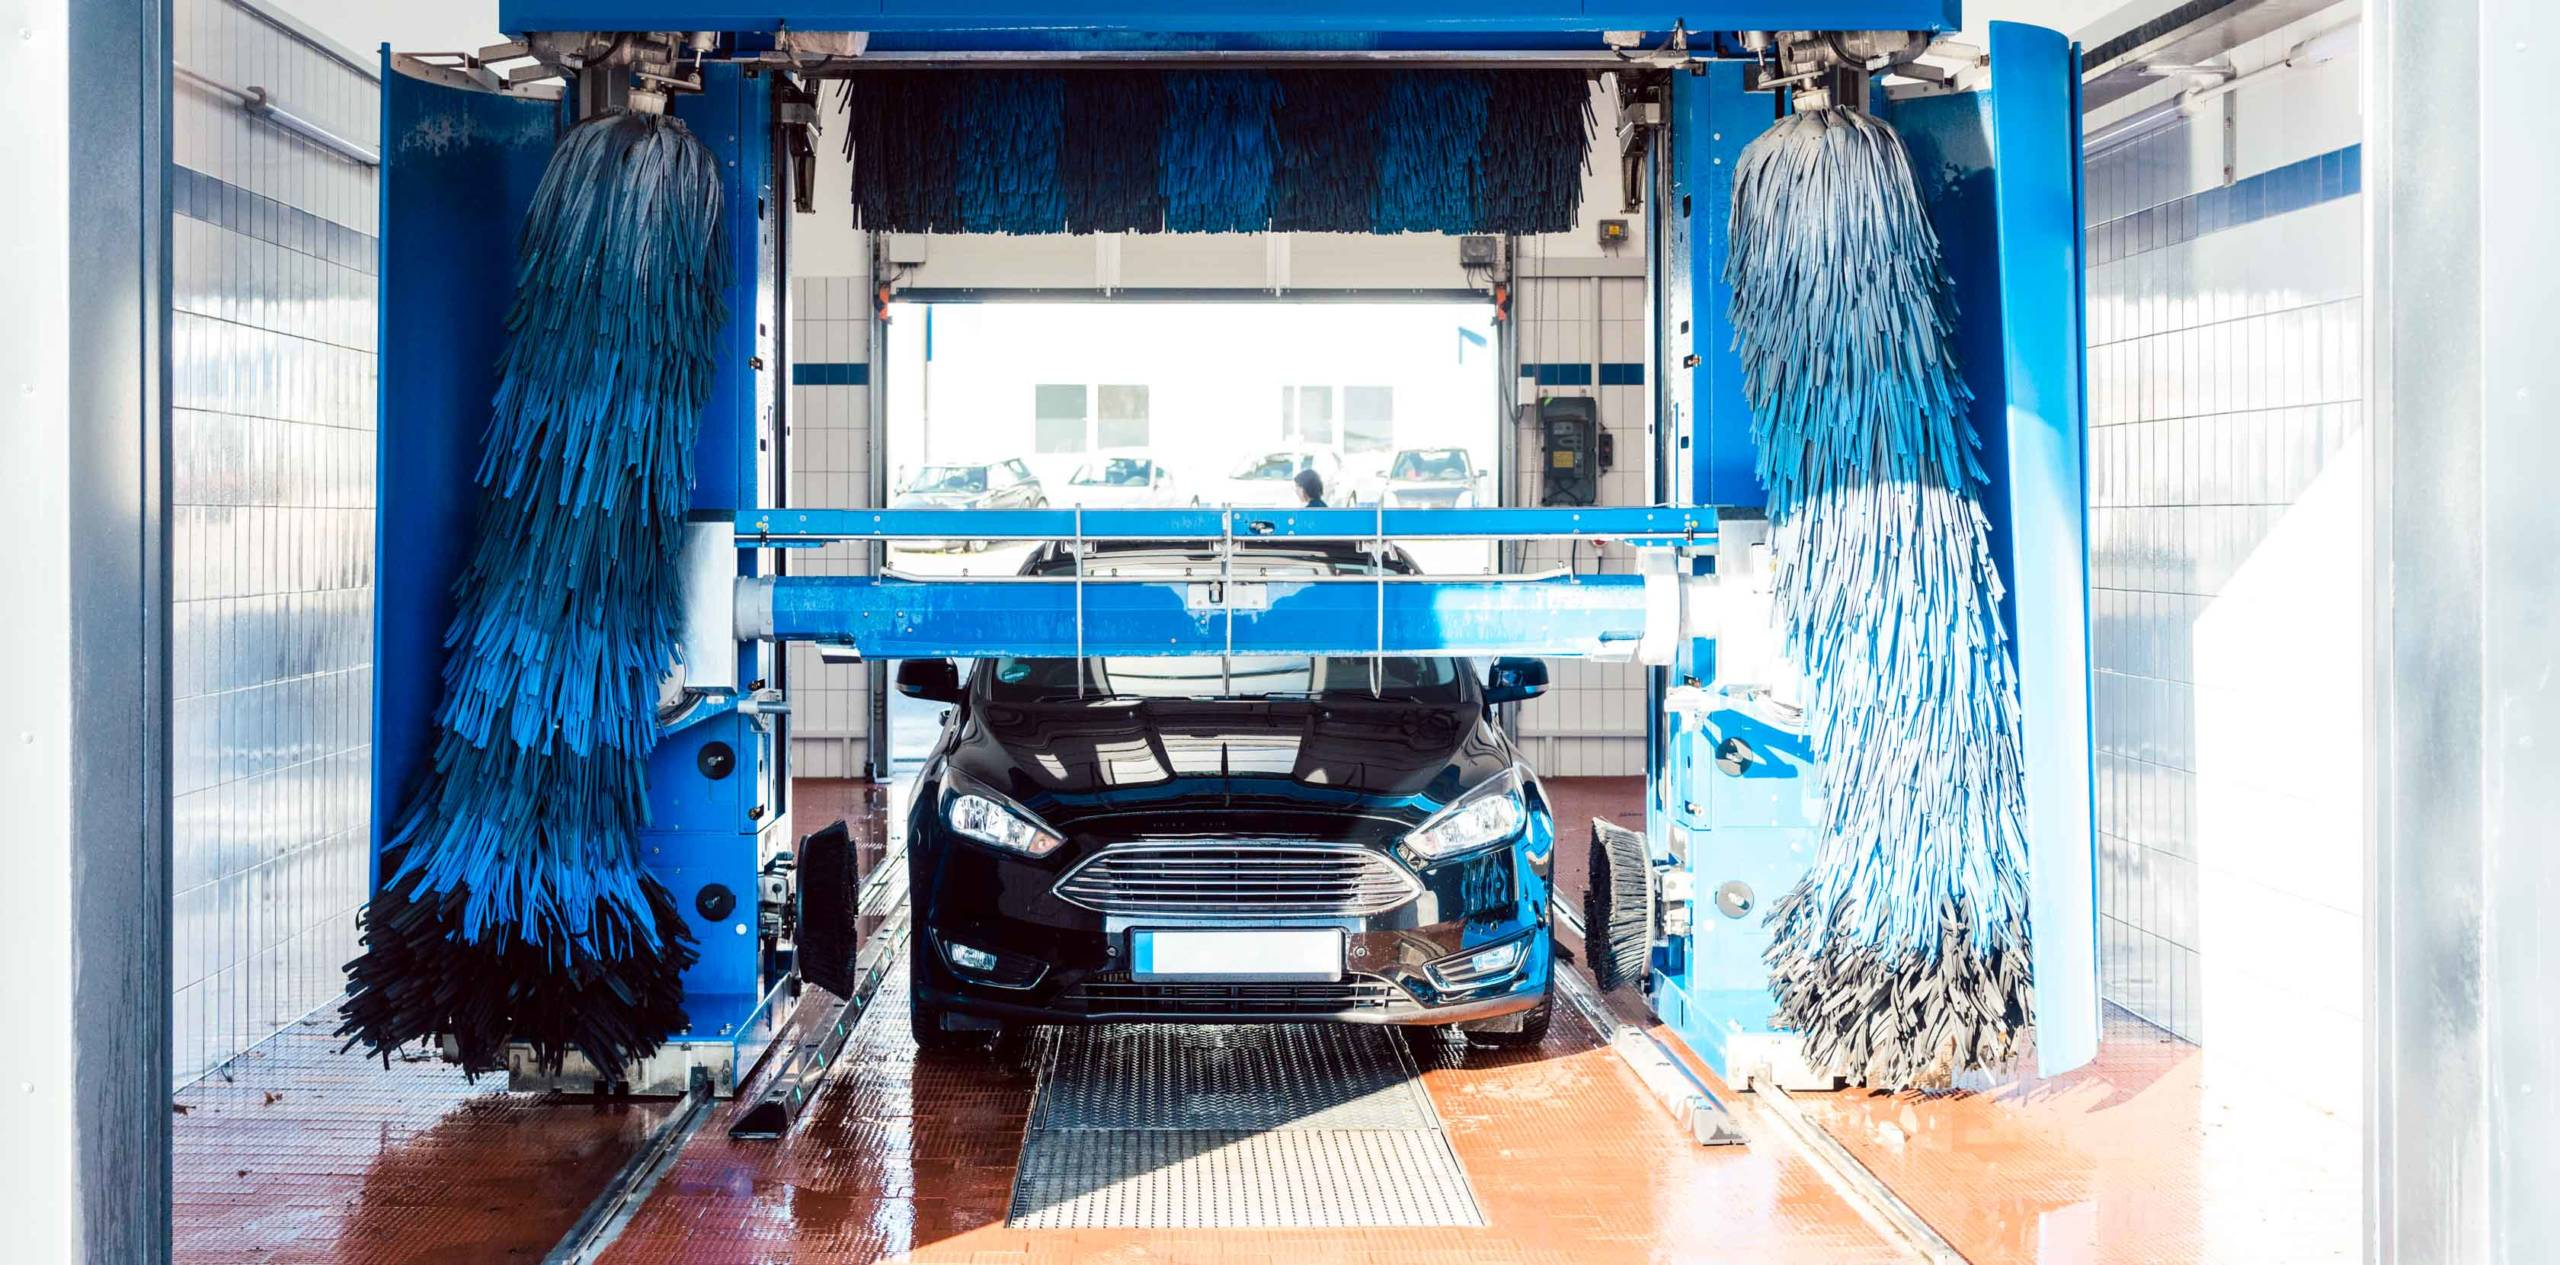 Car going through a car wash illustrating the benefits of softer water on automobiles.